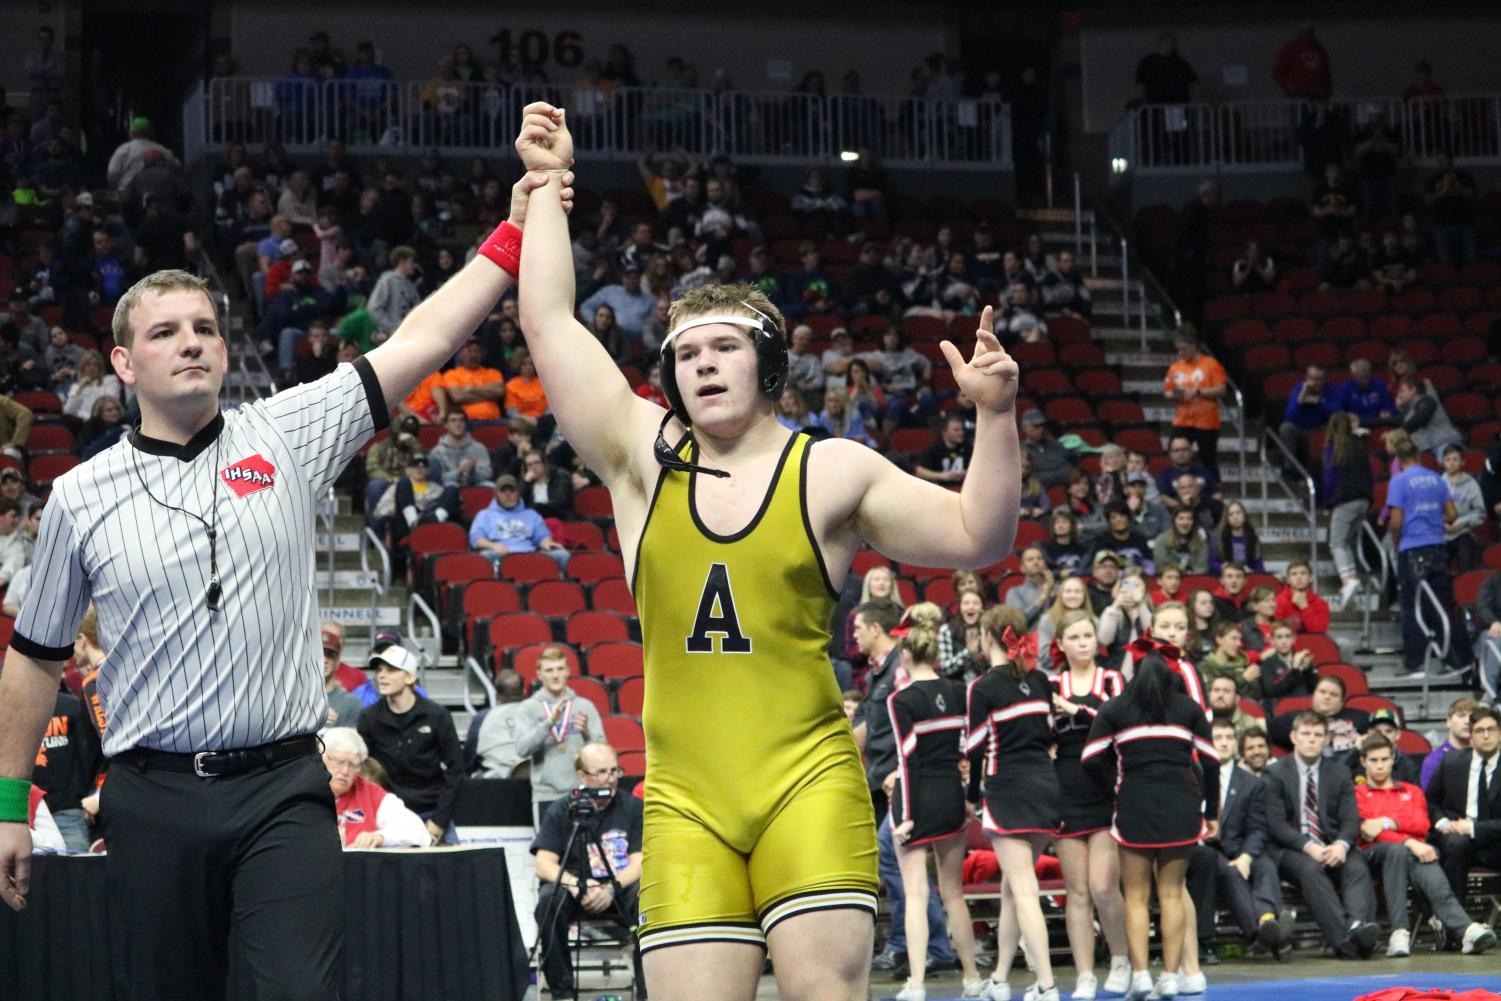 HEART OF A CHAMPION - Senior John McConkey gets his hand raised to signal he has won the State title. McConkey won his match with a final score of 7-6 against Spencer Trenary of Clarion-Goldfield-Dows.